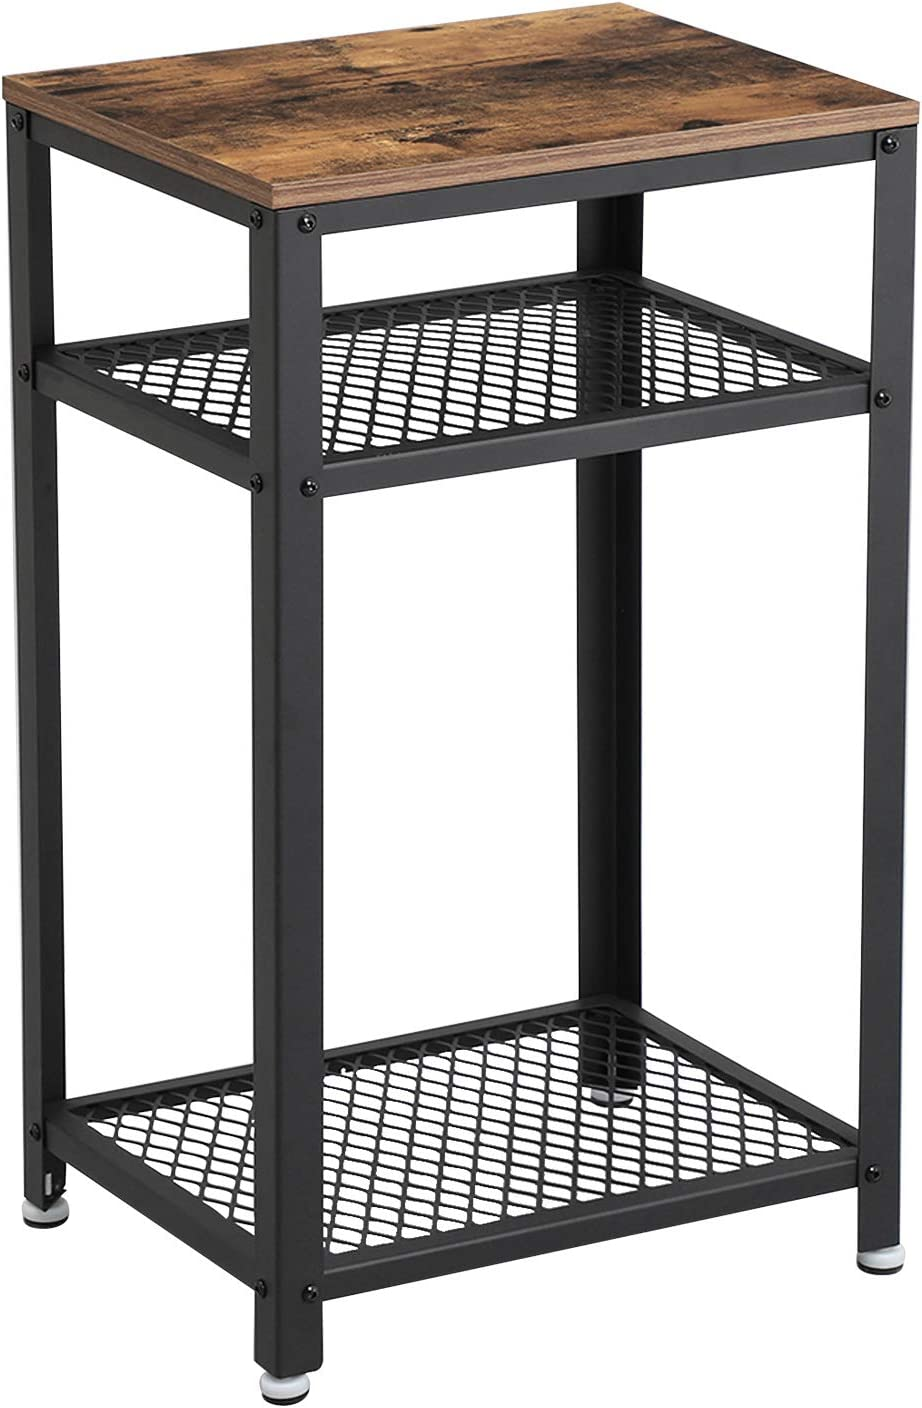 - Amazon.com: VASAGLE Industrial Side Table, End Telephone Table